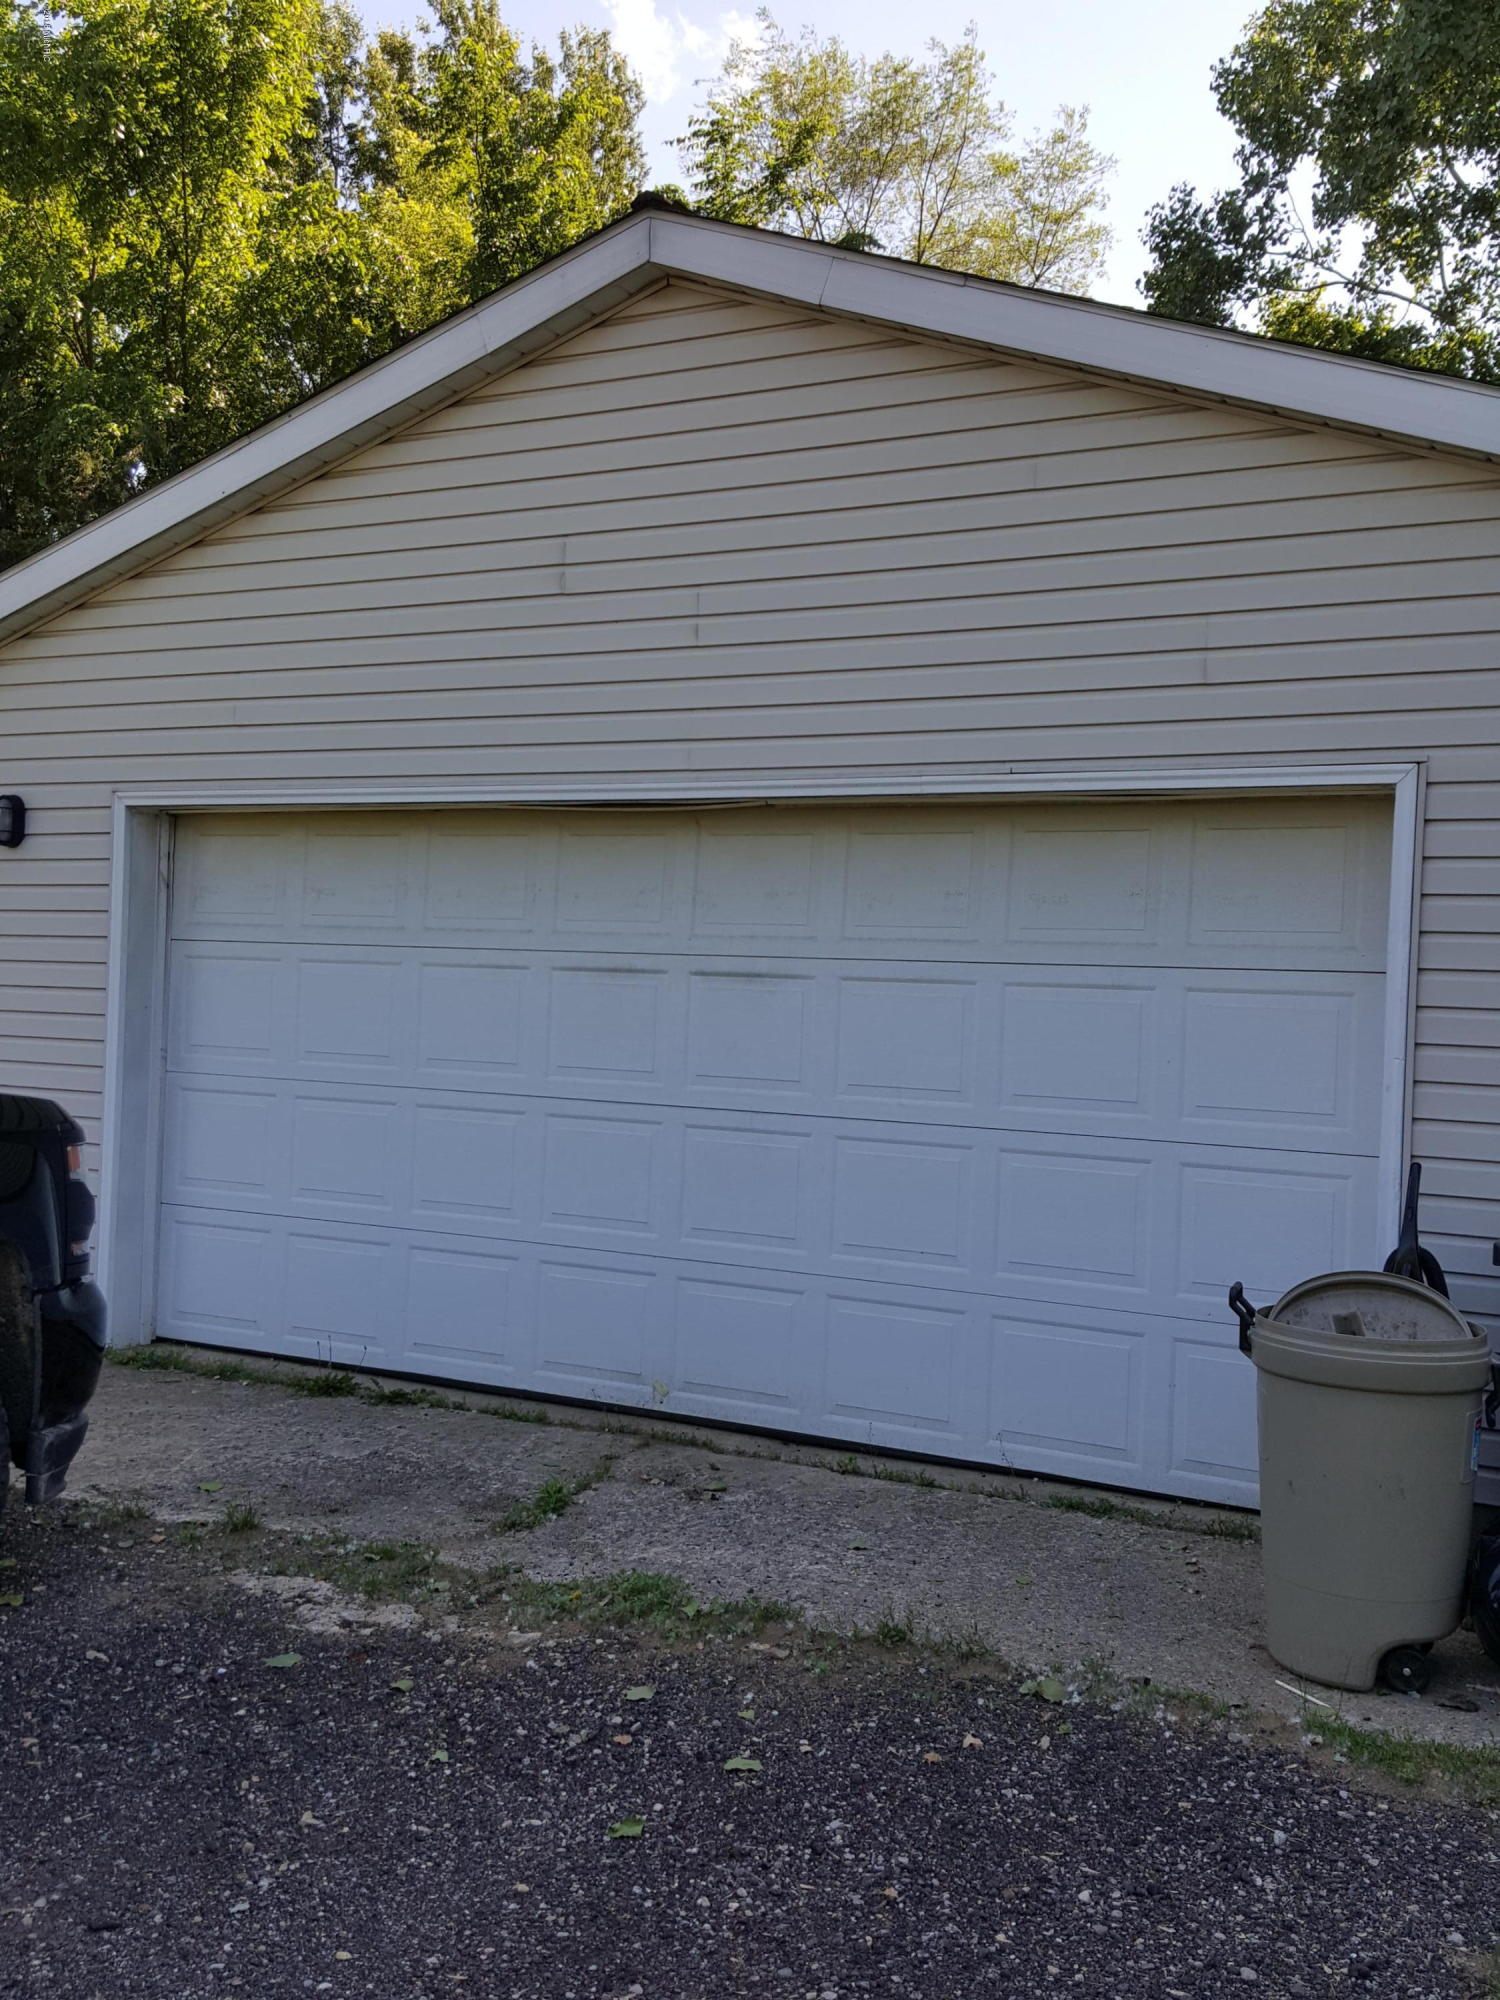 Garage Door Repair Jackson Mi 6420 Gillis Drive Jackson 49201 Mls 18025370 Greenridge Realty Inc